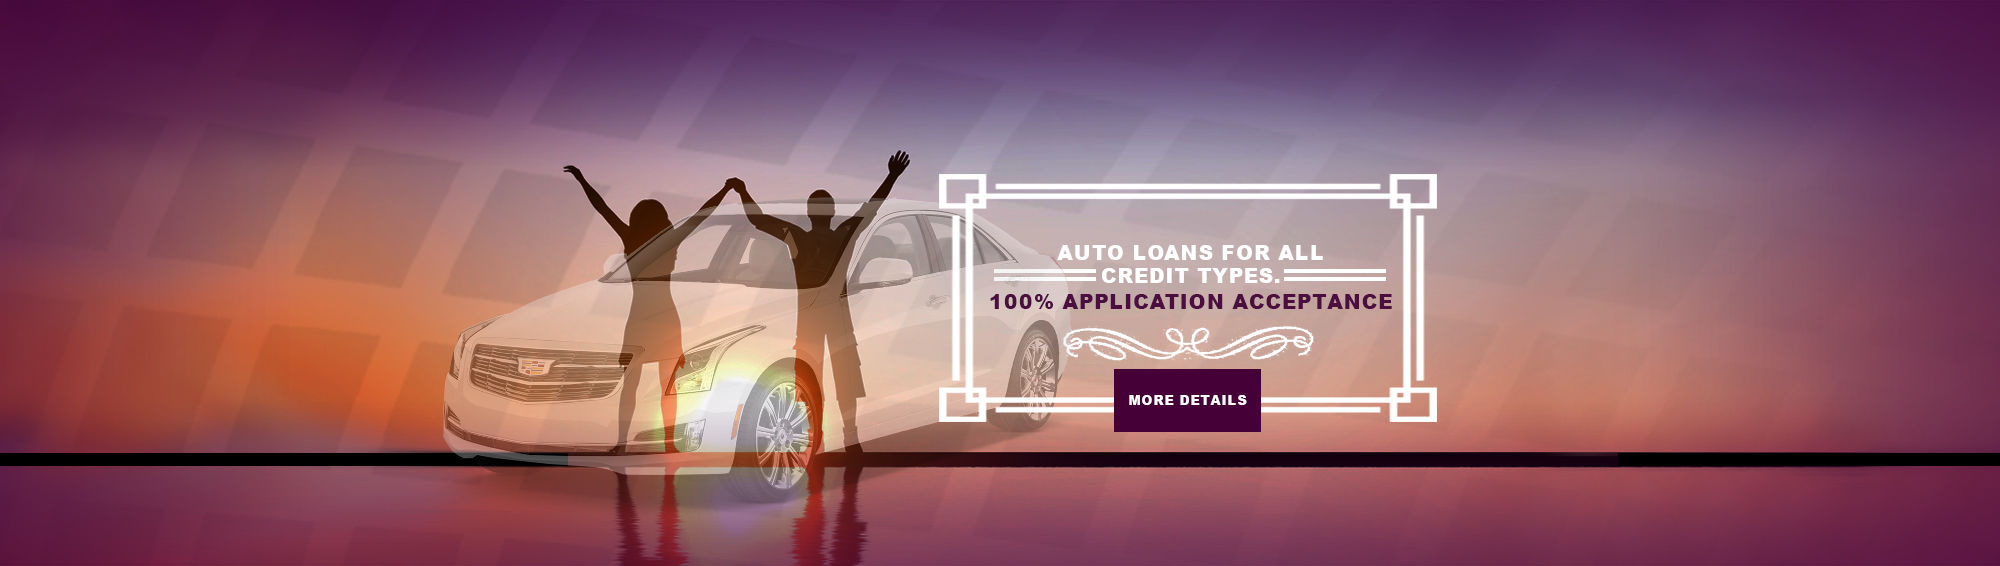 Auto Loans for All